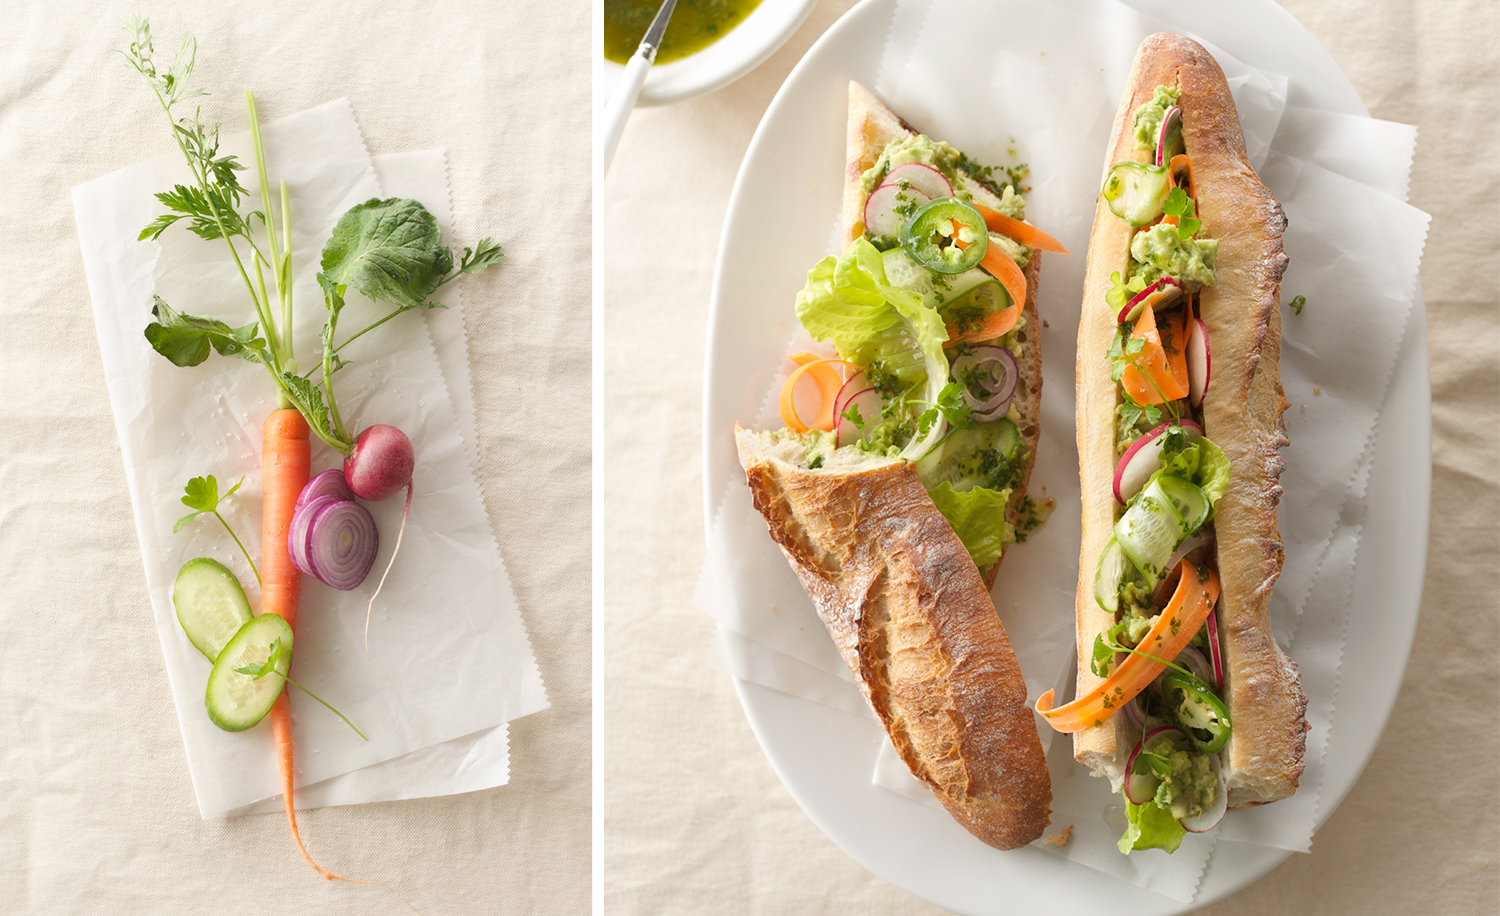 Vegetables And Baguette Sandwich | Tony Kubat Photography